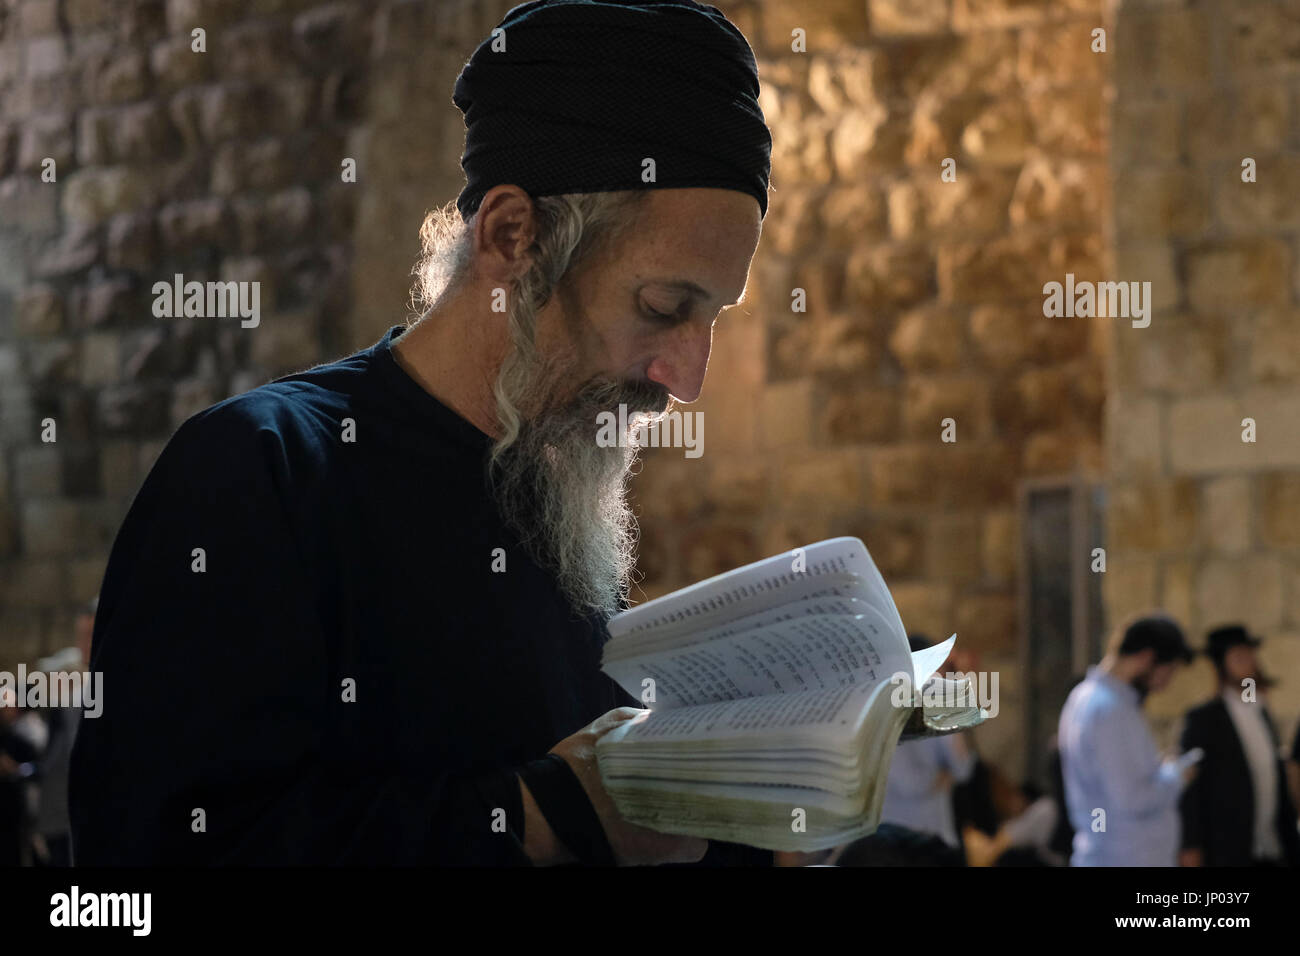 Israel, Jerusalem 31st July. Orthodox Jewish man mourning and reading from the biblical Book of Lamentation on Tisha B'Av feast at the Western Wall in Jerusalem Israel on 31 July 2017. Tisha B'Av is an annual fast day in Judaism, The fast commemorates the destruction of the First and Second Temples in Jerusalem, which occurred about 656 years apart, but on the same date. Accordingly, the day has been called the 'saddest day in Jewish history. - Stock Image